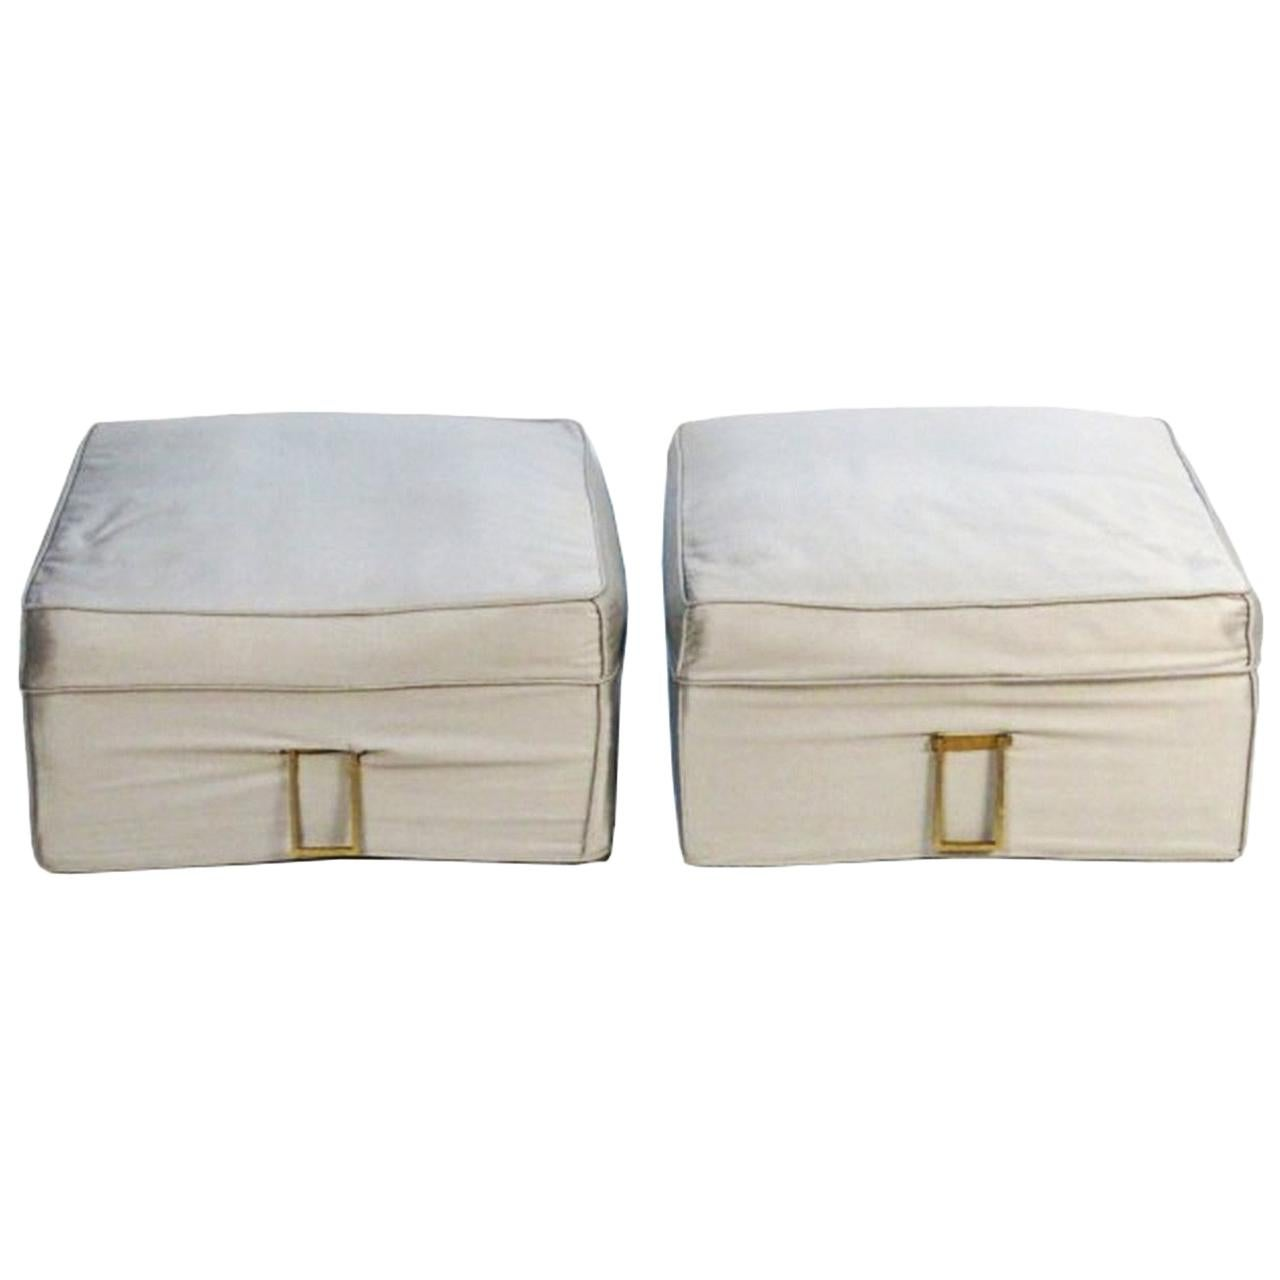 Pair of Upholstered Benches with Brass Handles